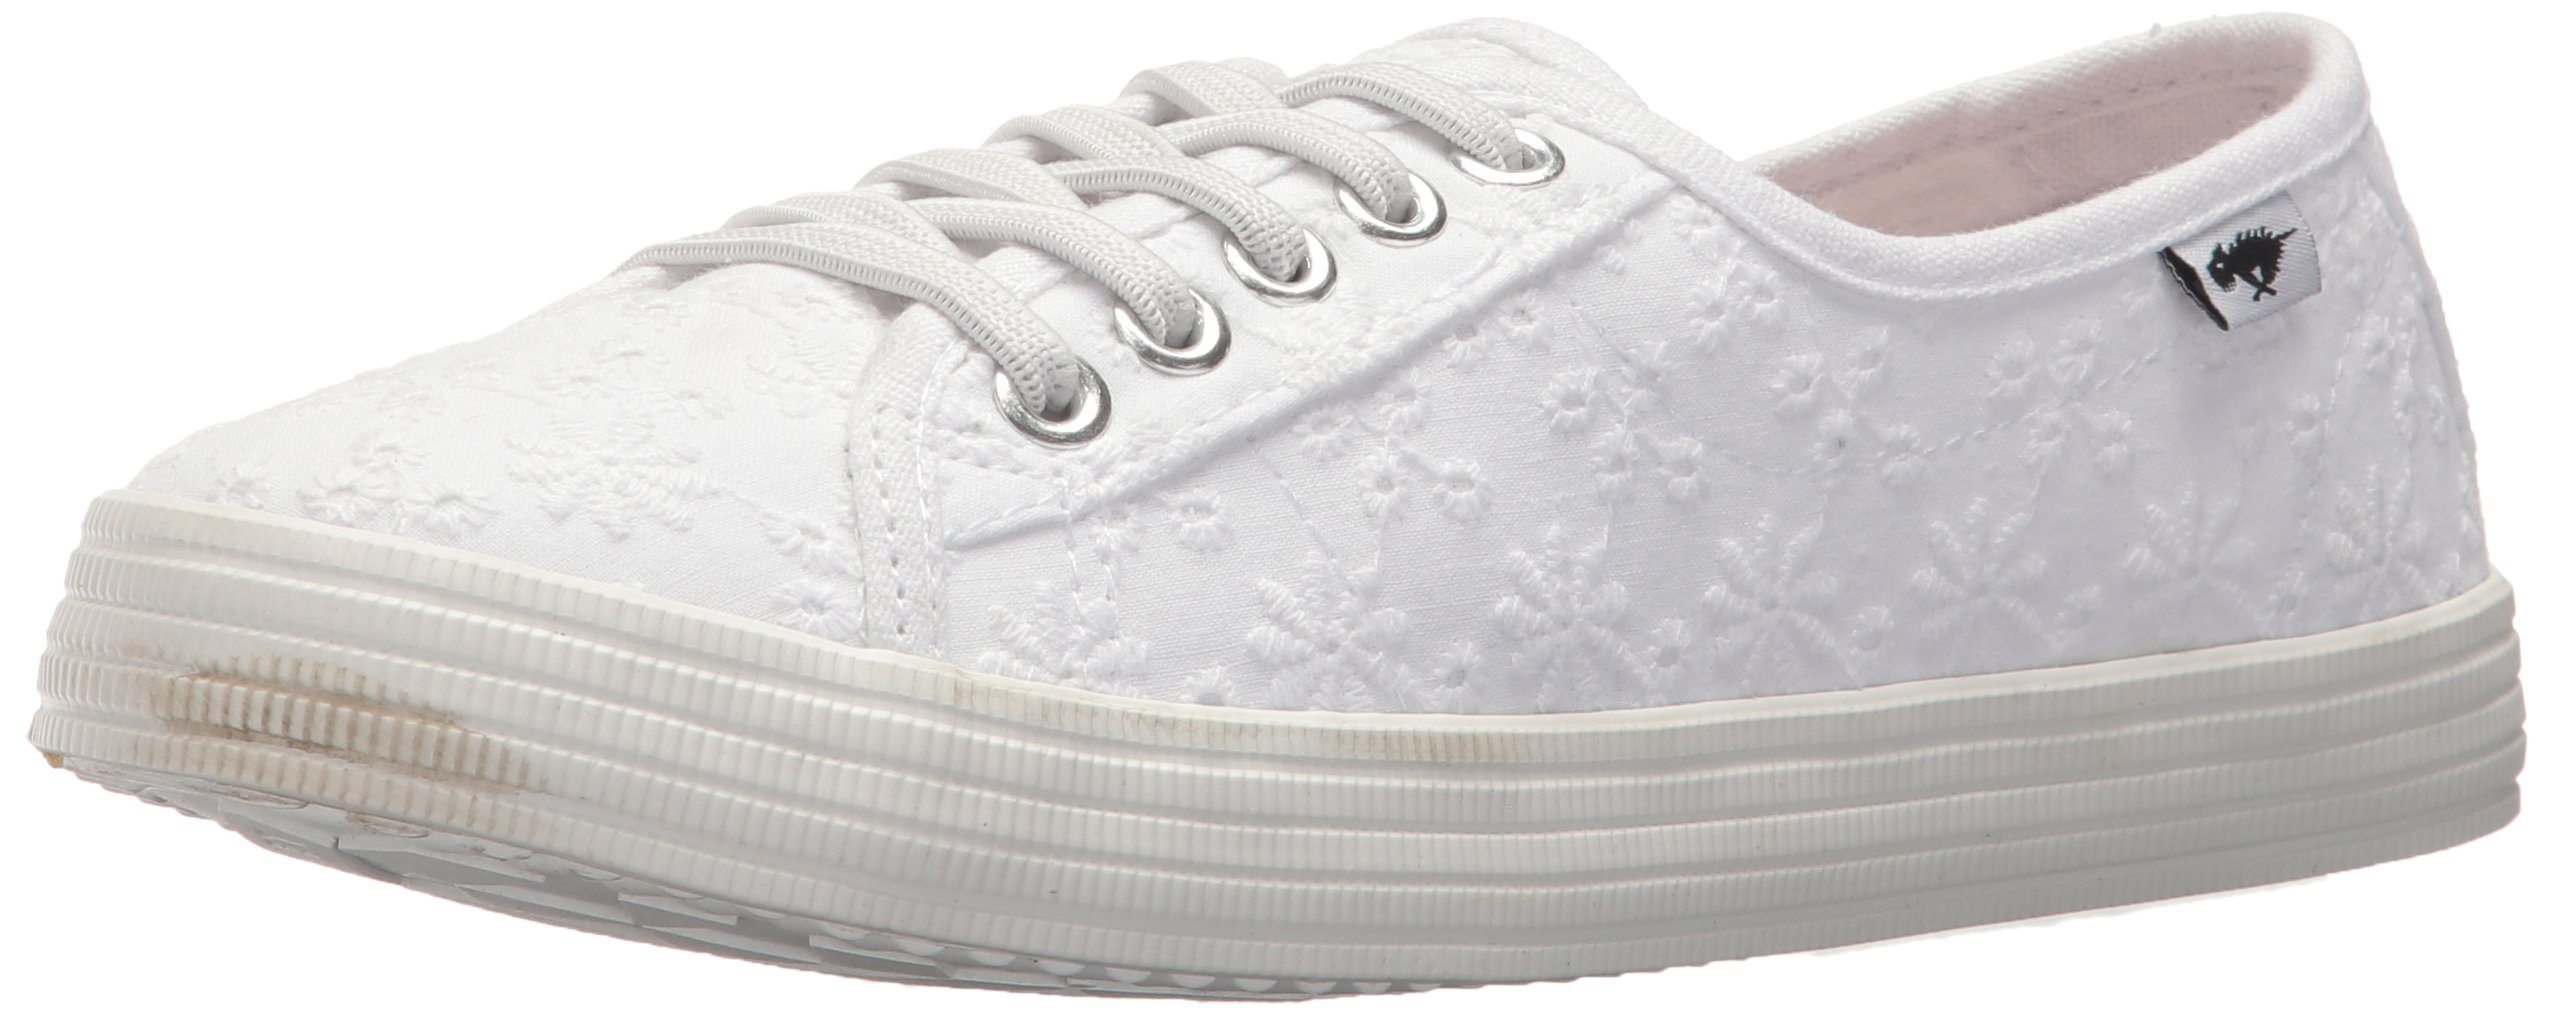 Rocket Dog Women's Chowchow Lucky Eyelet Cotton Sneaker, White, 9.5 Medium US by Rocket Dog (Image #1)